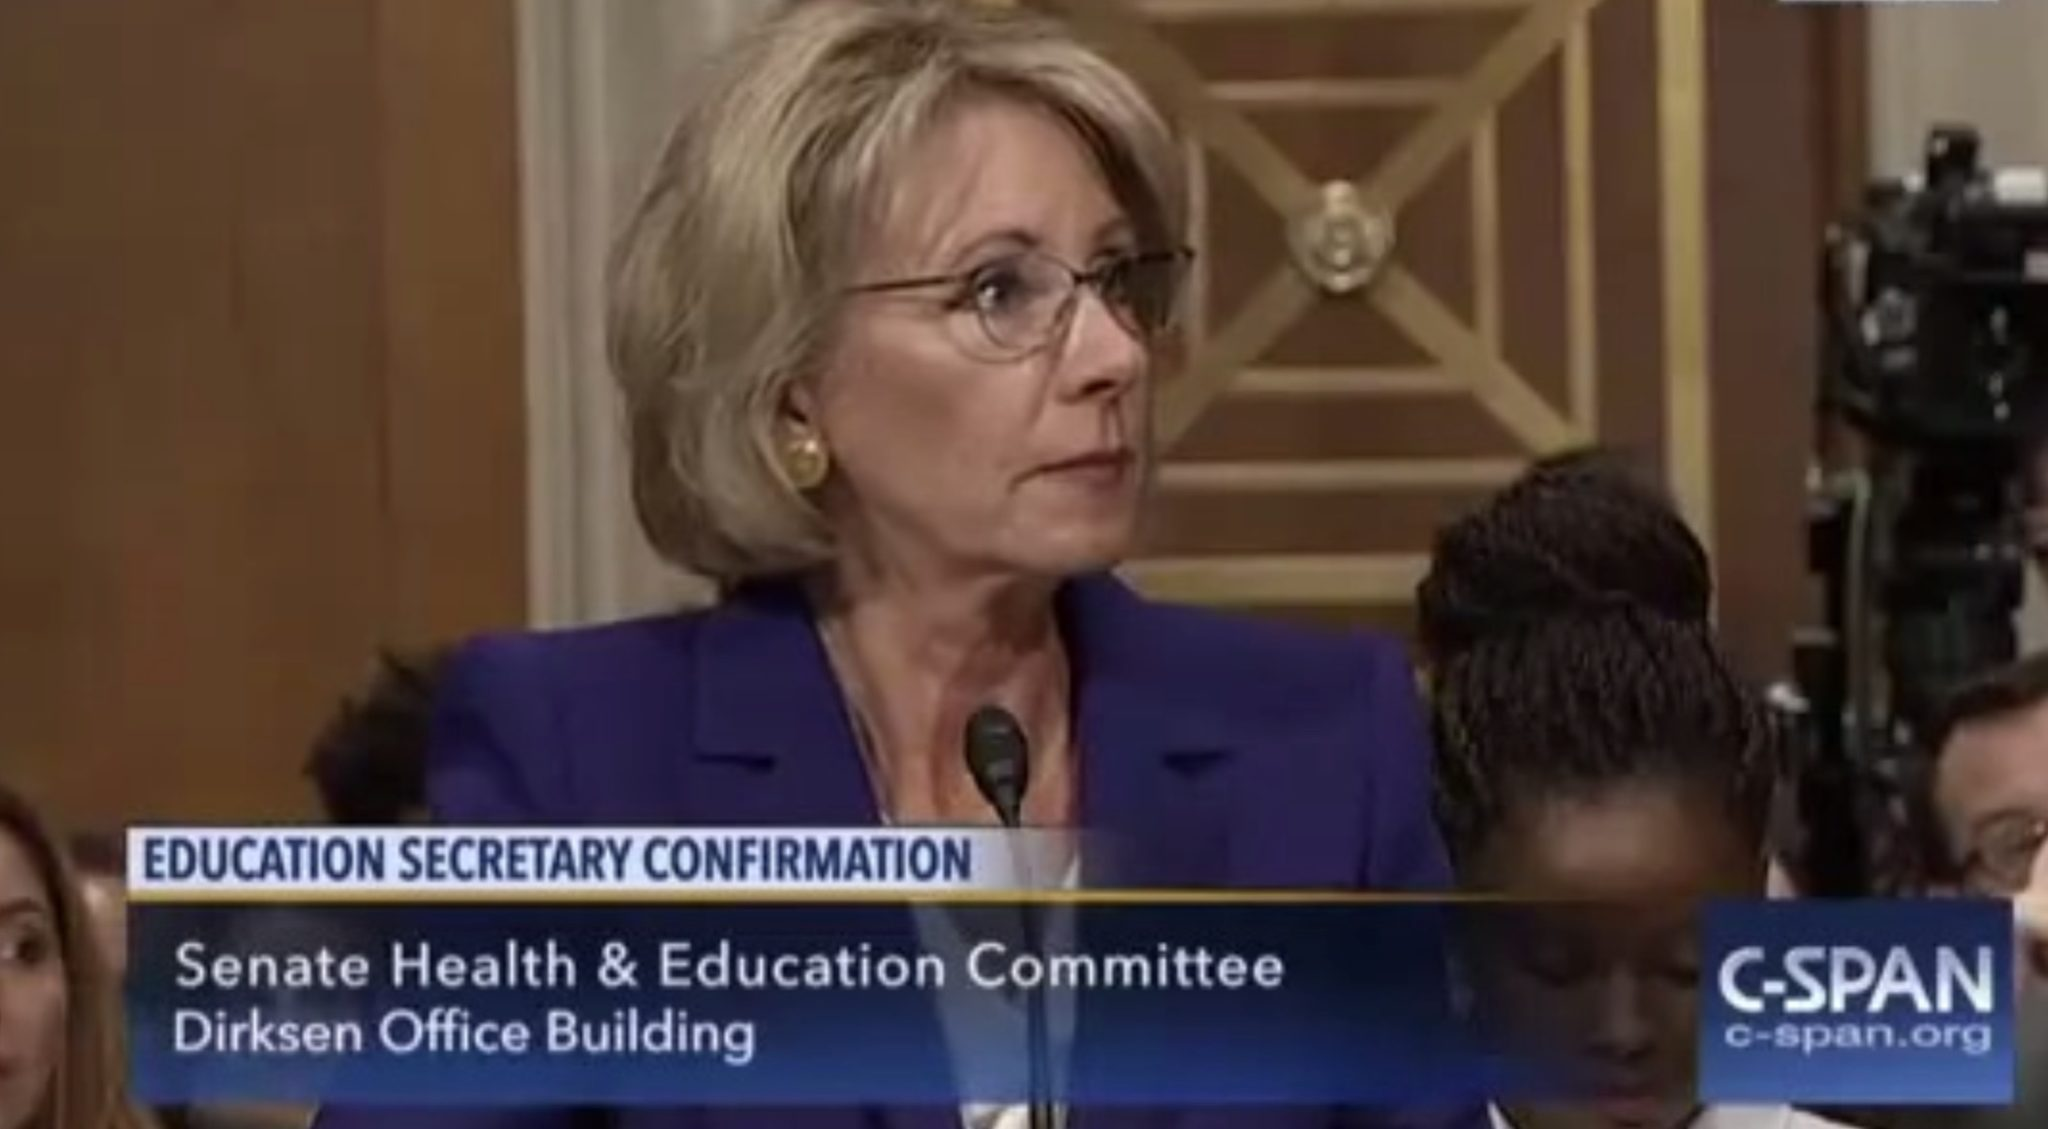 The Betsy Devos Plagiarism Scandal Image